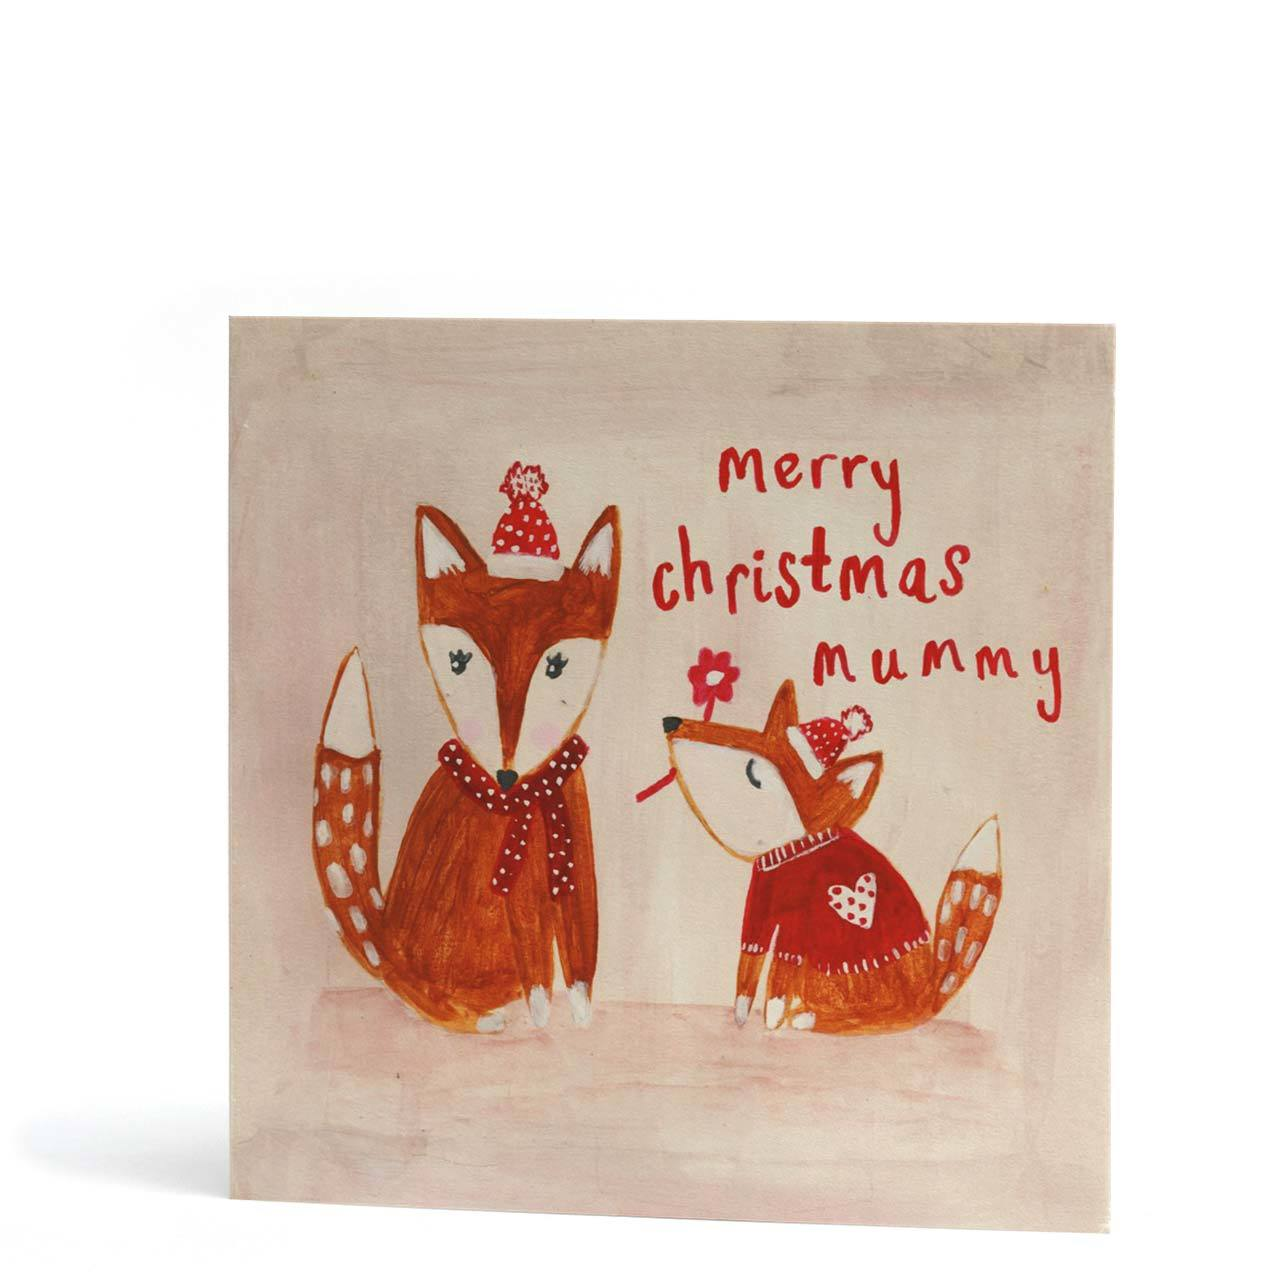 Merry Christmas Mummy Greeting Card